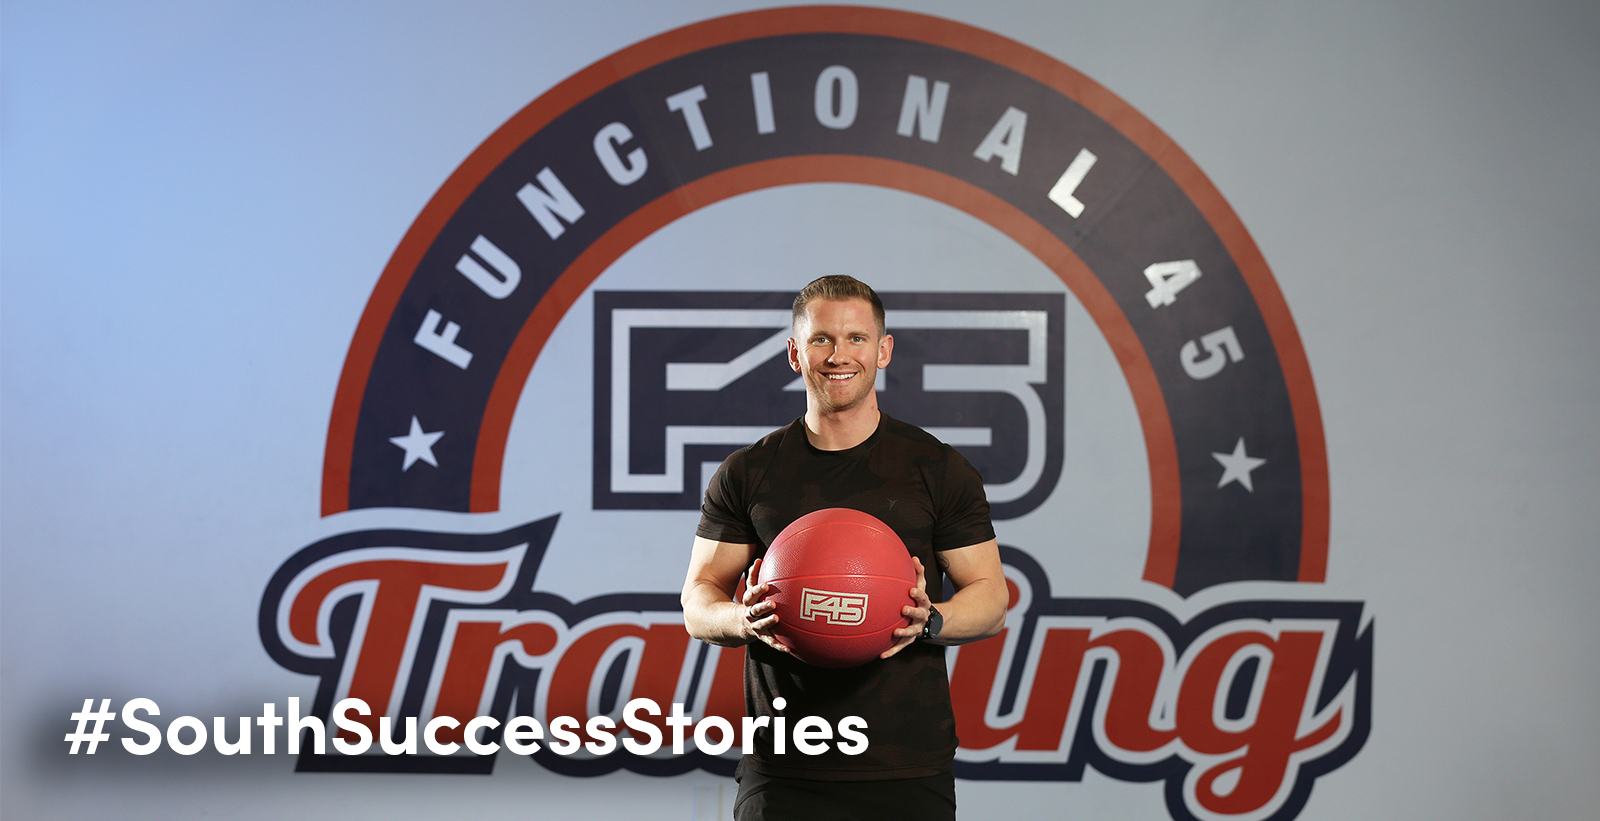 Andy Vickers, a graduate of the University of South Alabama's Mitchell College of Business, opened two F45 fitness training studios and plans to open a third in Pensacola.